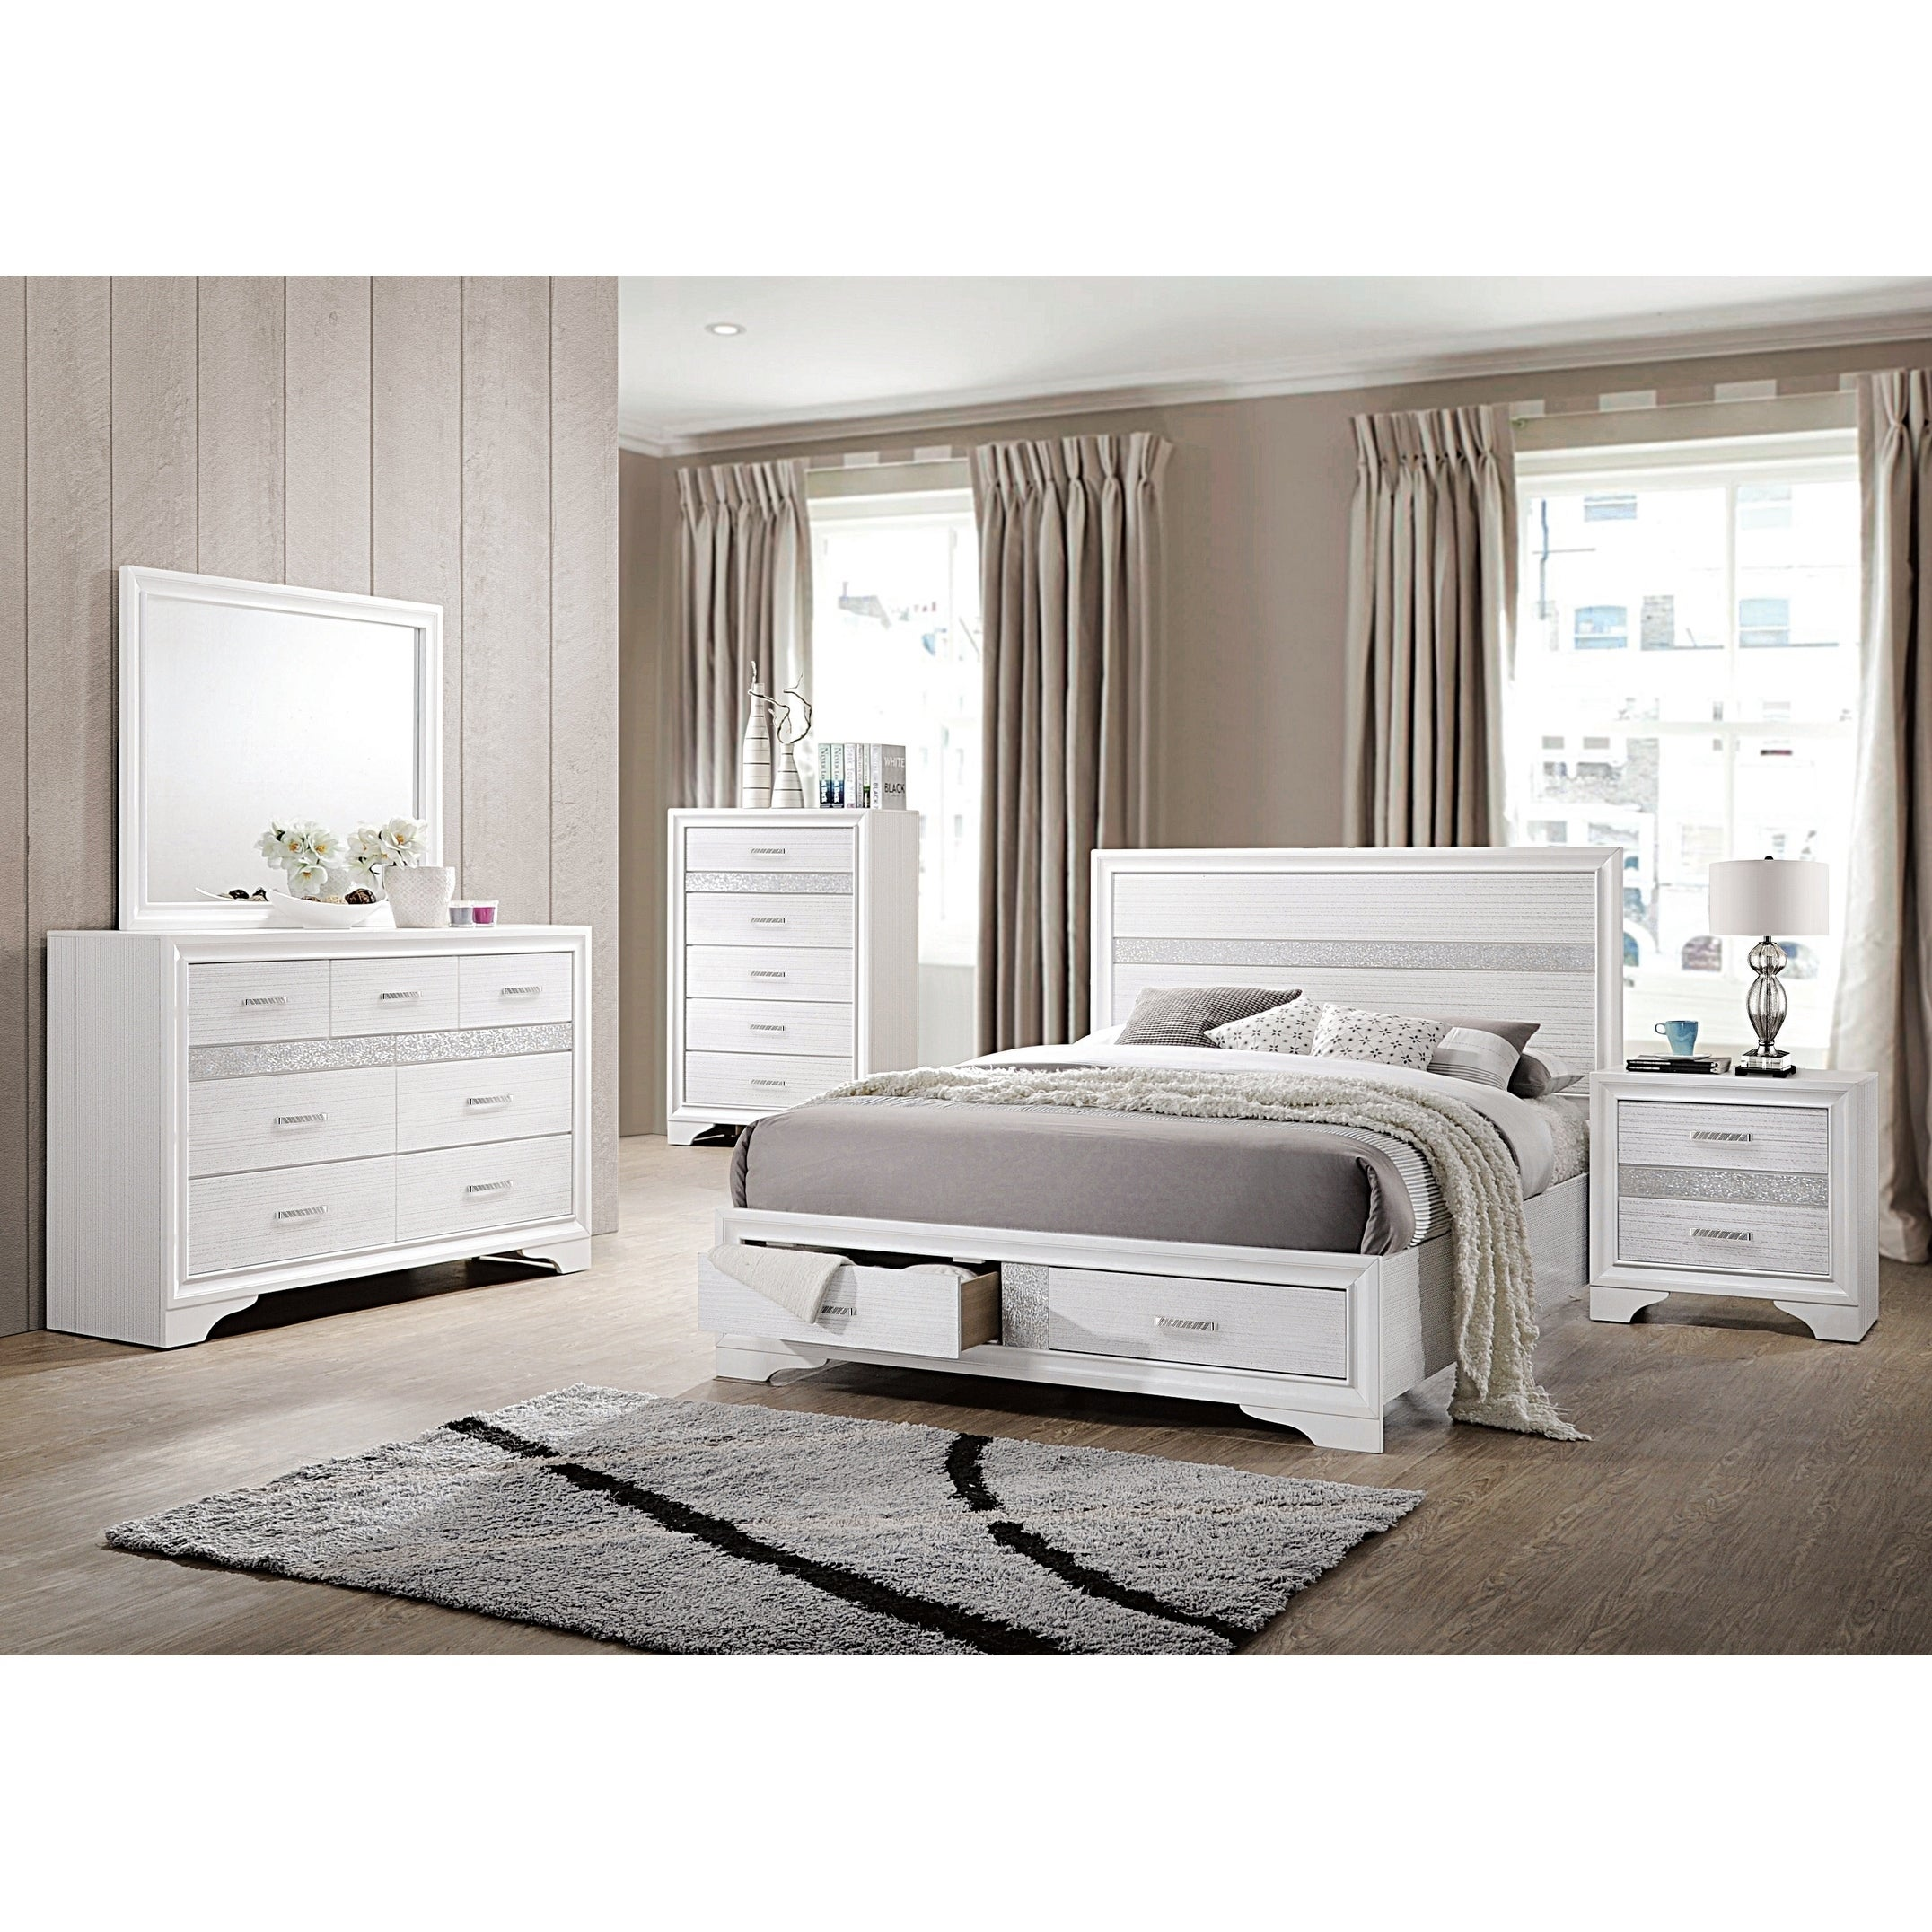 Miranda Contemporary White 4-piece Bedroom Set